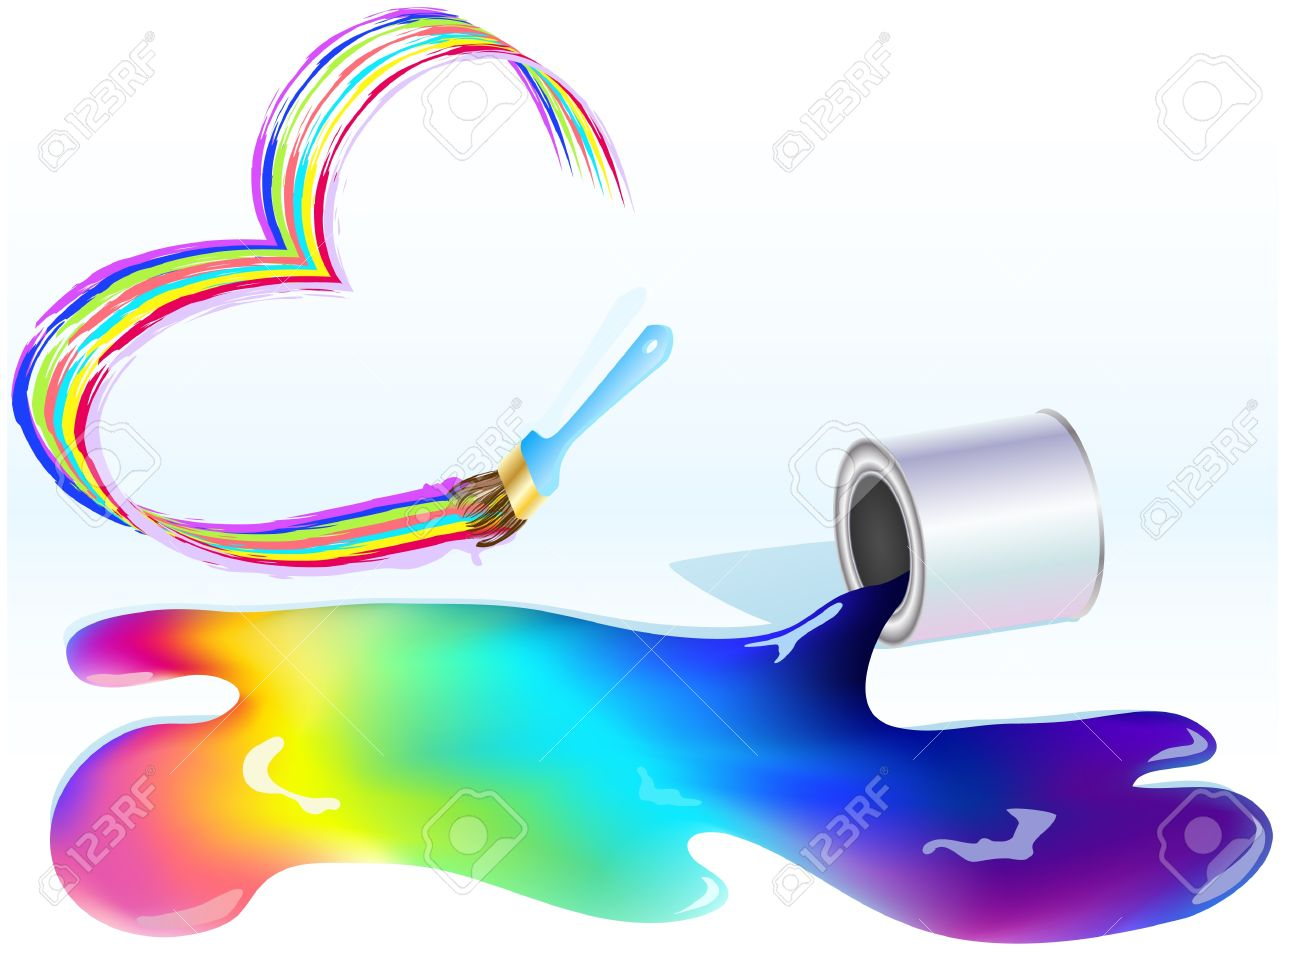 spilled paint can clipart. multicolored paint spilled from a can stock vector 10393397 clipart l